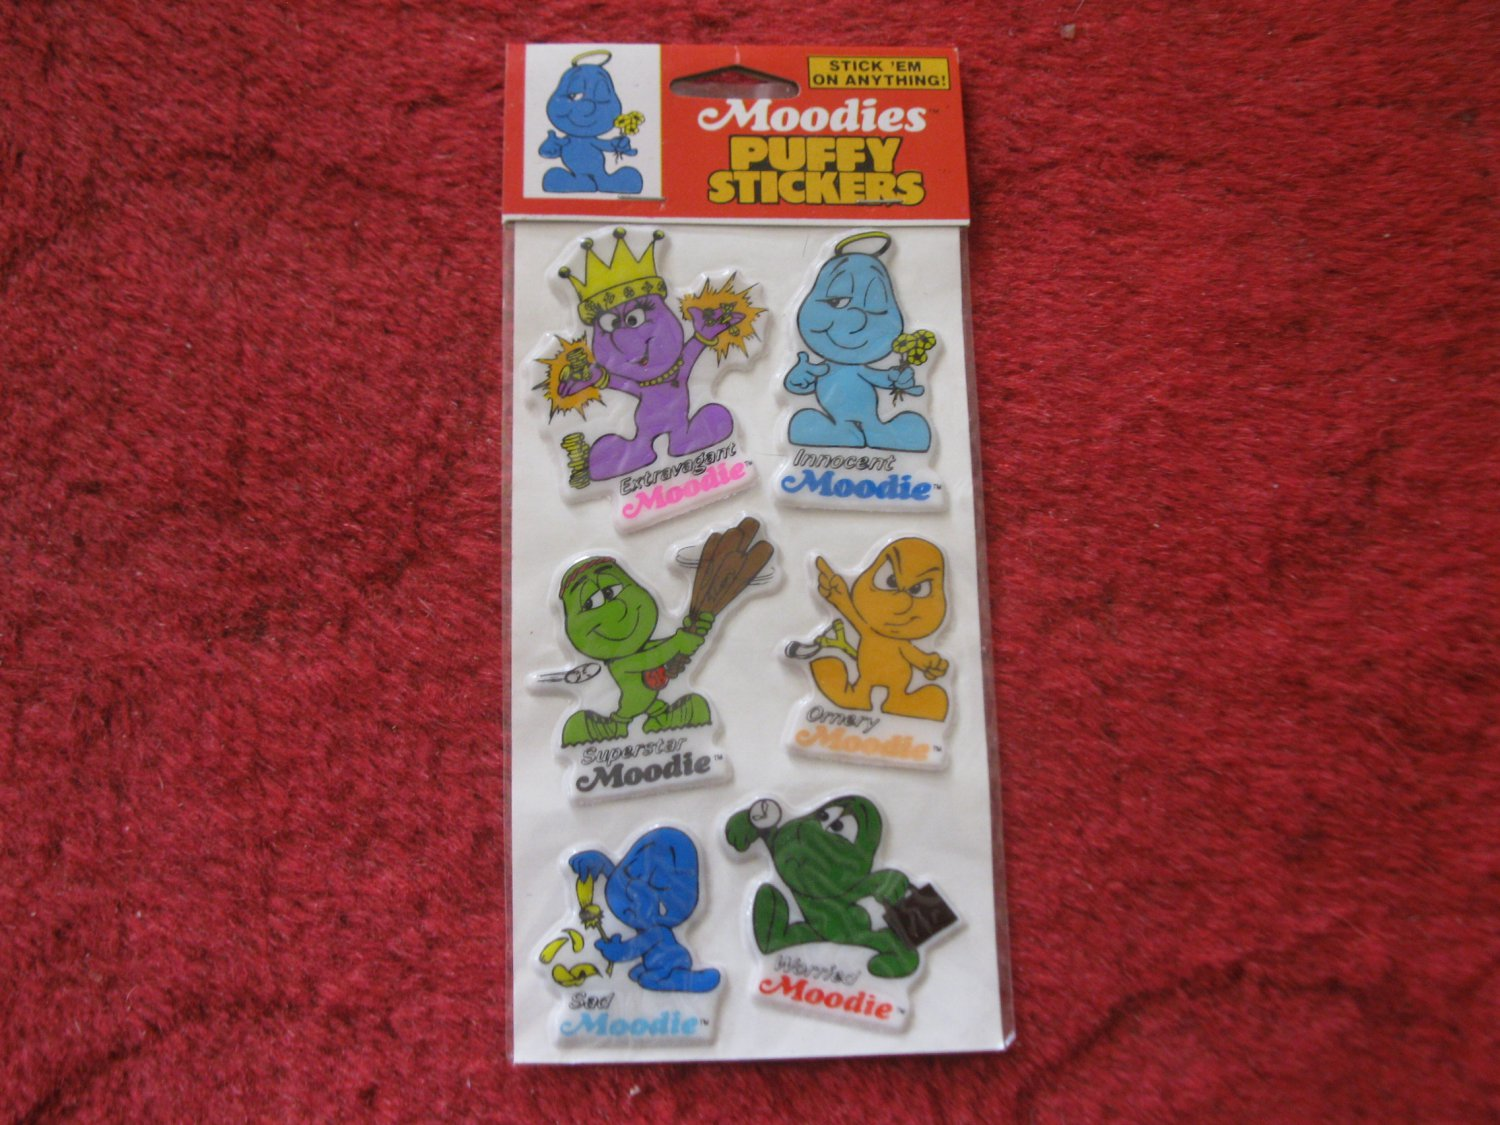 1983 Kent Toys Moodies Puffy Stickers (red top card)- Factory Sealed, Never Opened